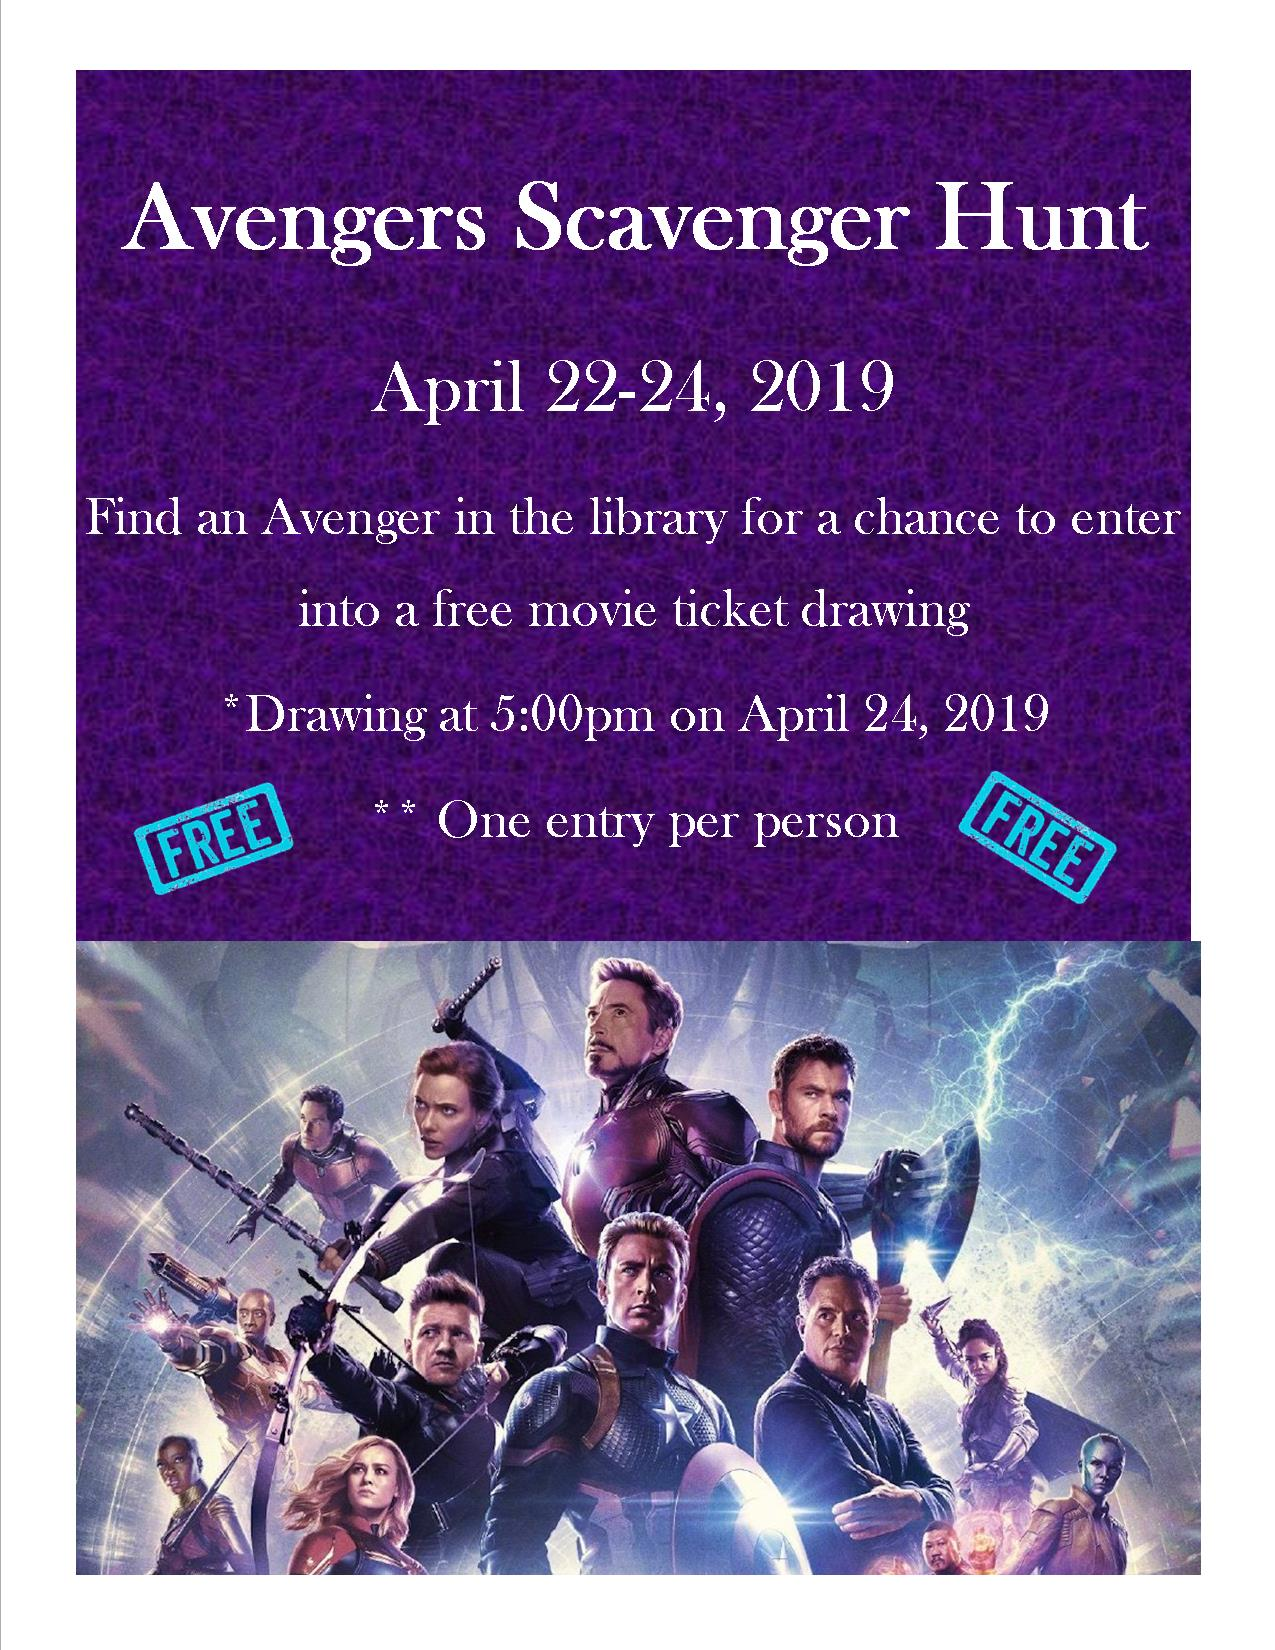 Avengers Scavenger Hunt time and date